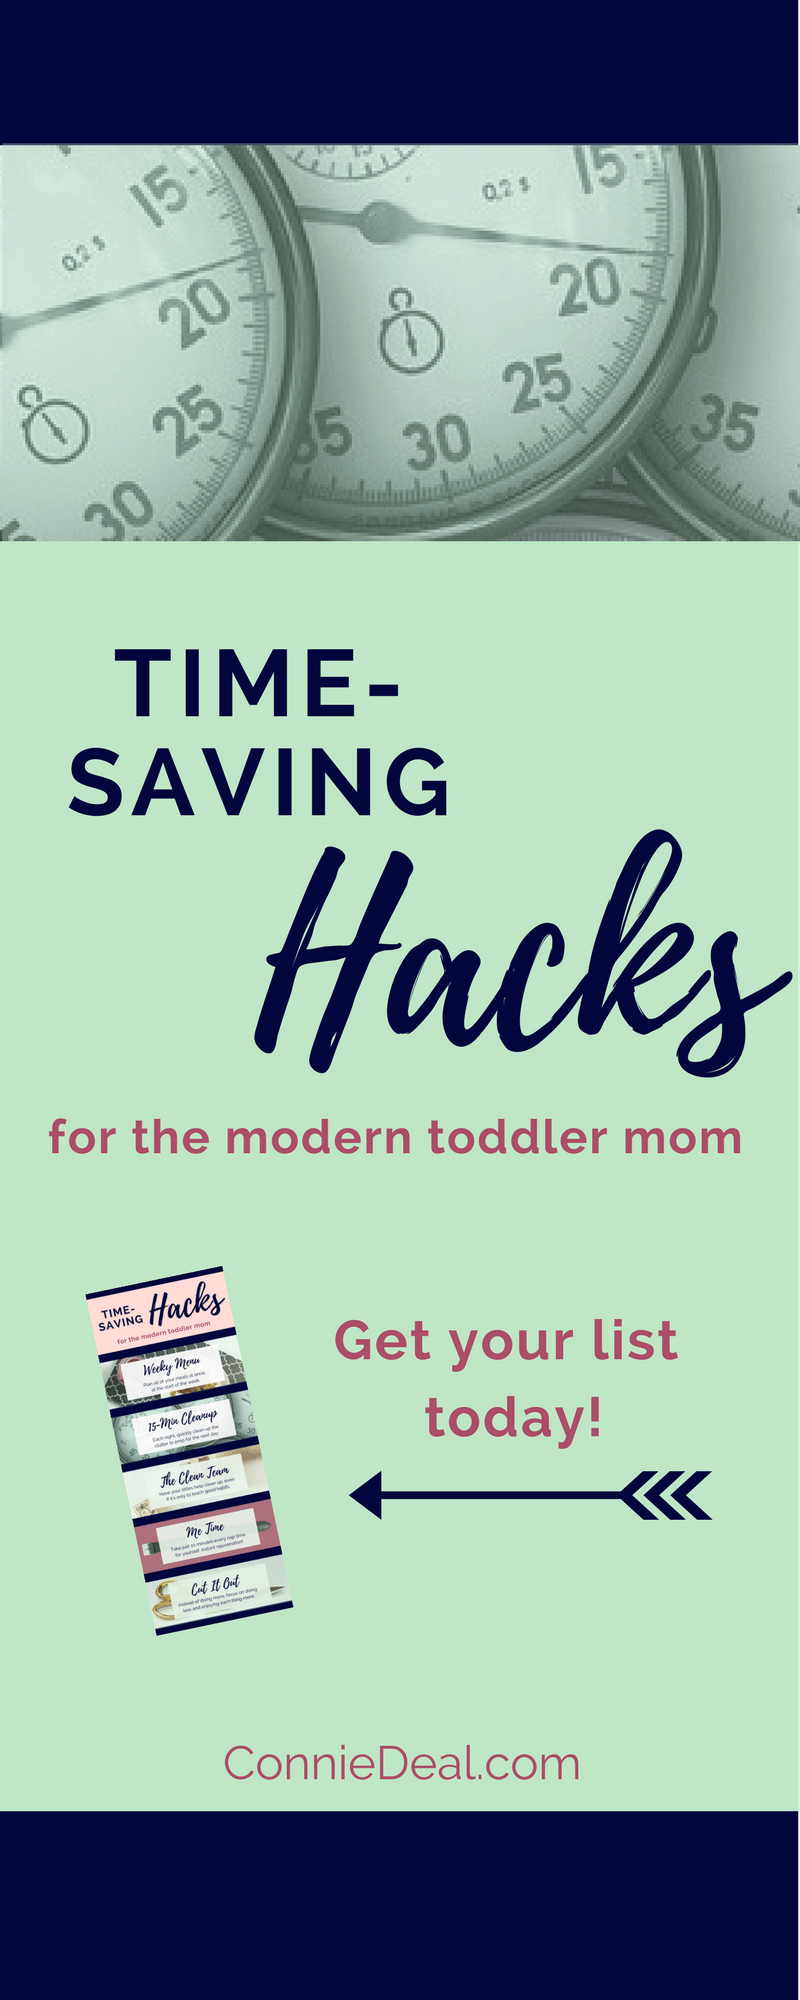 Learn 5 hacks you can use RIGHT NOW to save yourself time, giving you more quality time with your toddler or preschooler to make memories. Have more time for toddler activities, toddler arts and crafts, seasonal fun, and quality family time when you use these ideas! #toddlers #toddlerroutine #toddlerschedule #momhacks #timesavinghacks